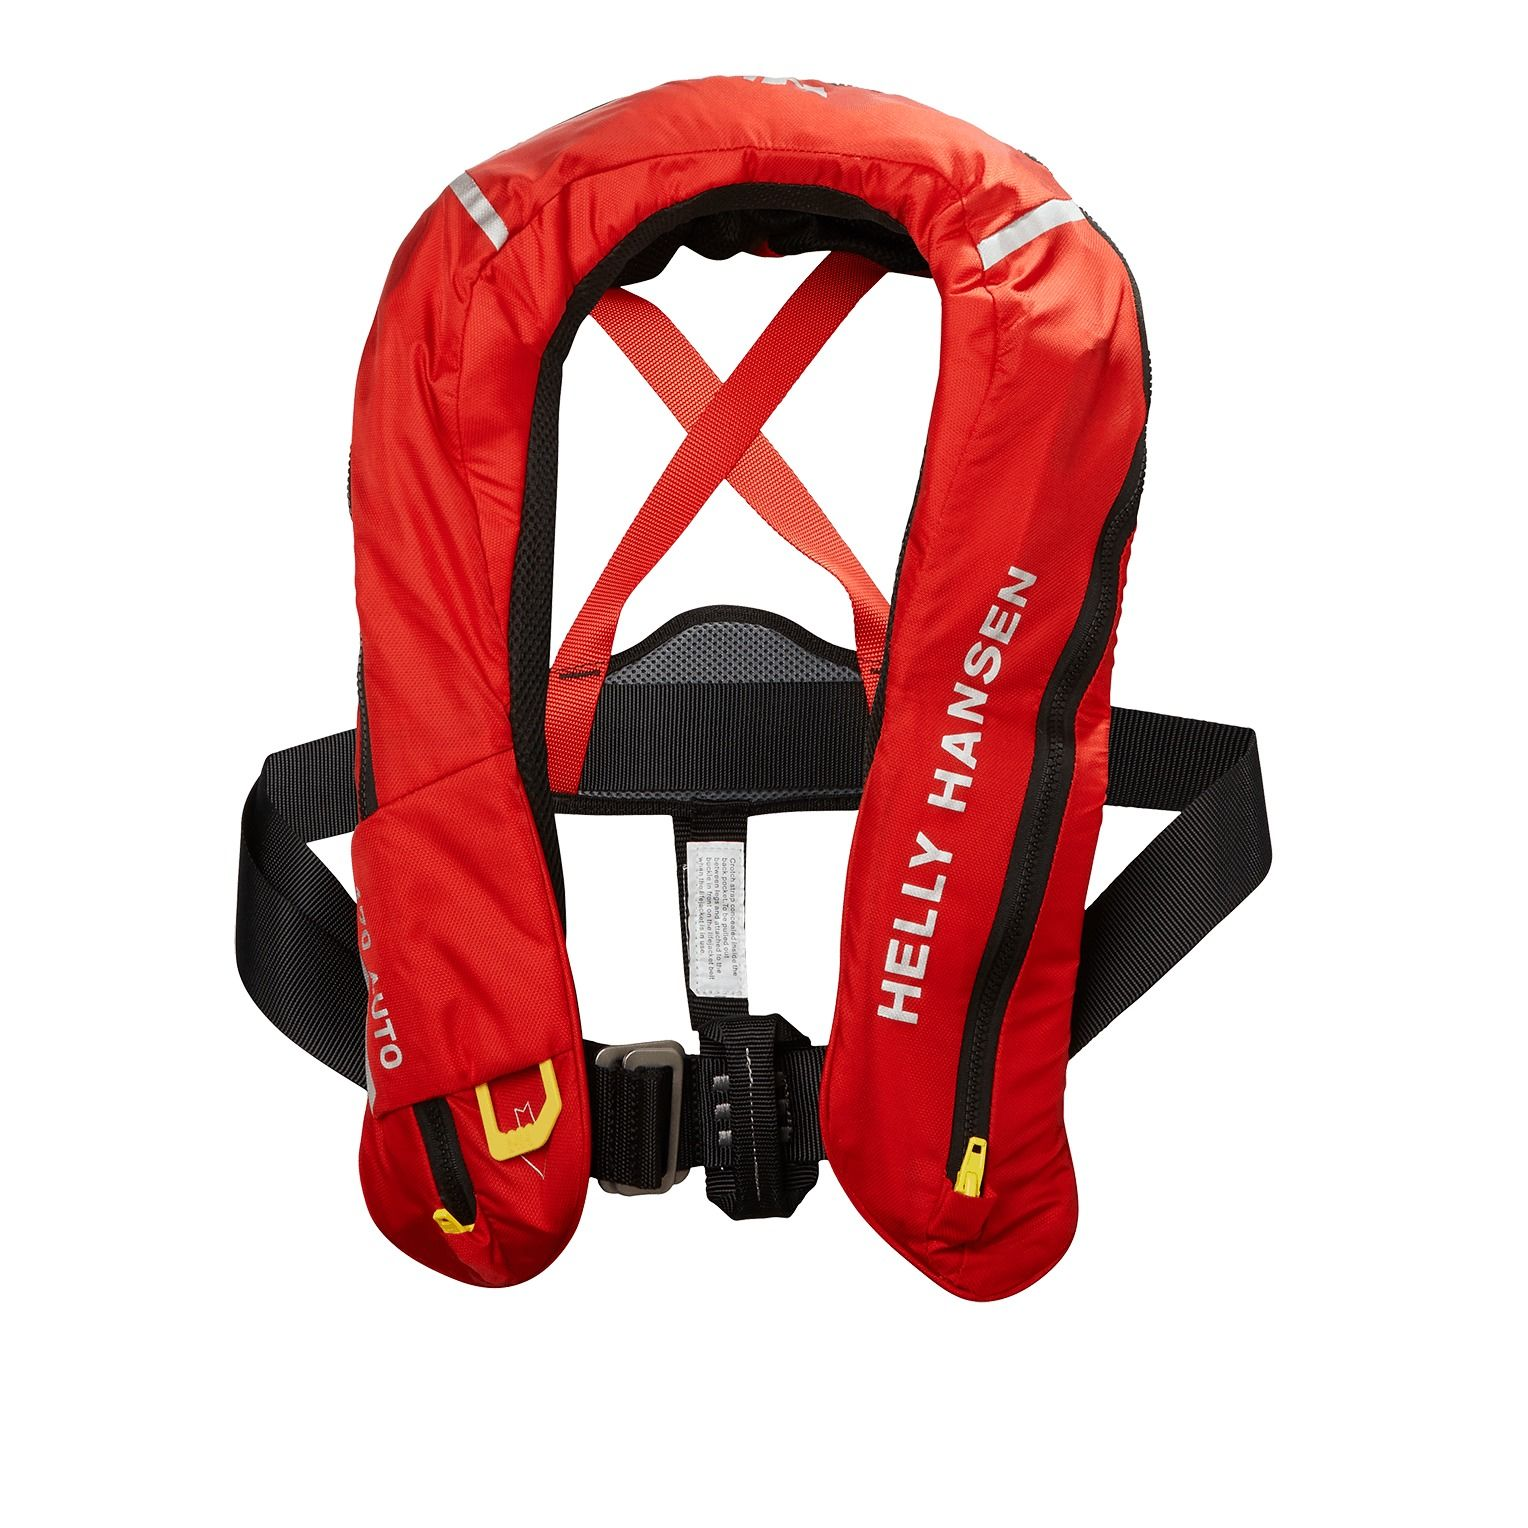 Záchranná vesta - SAILSAFE INFLATABLE INSHORE